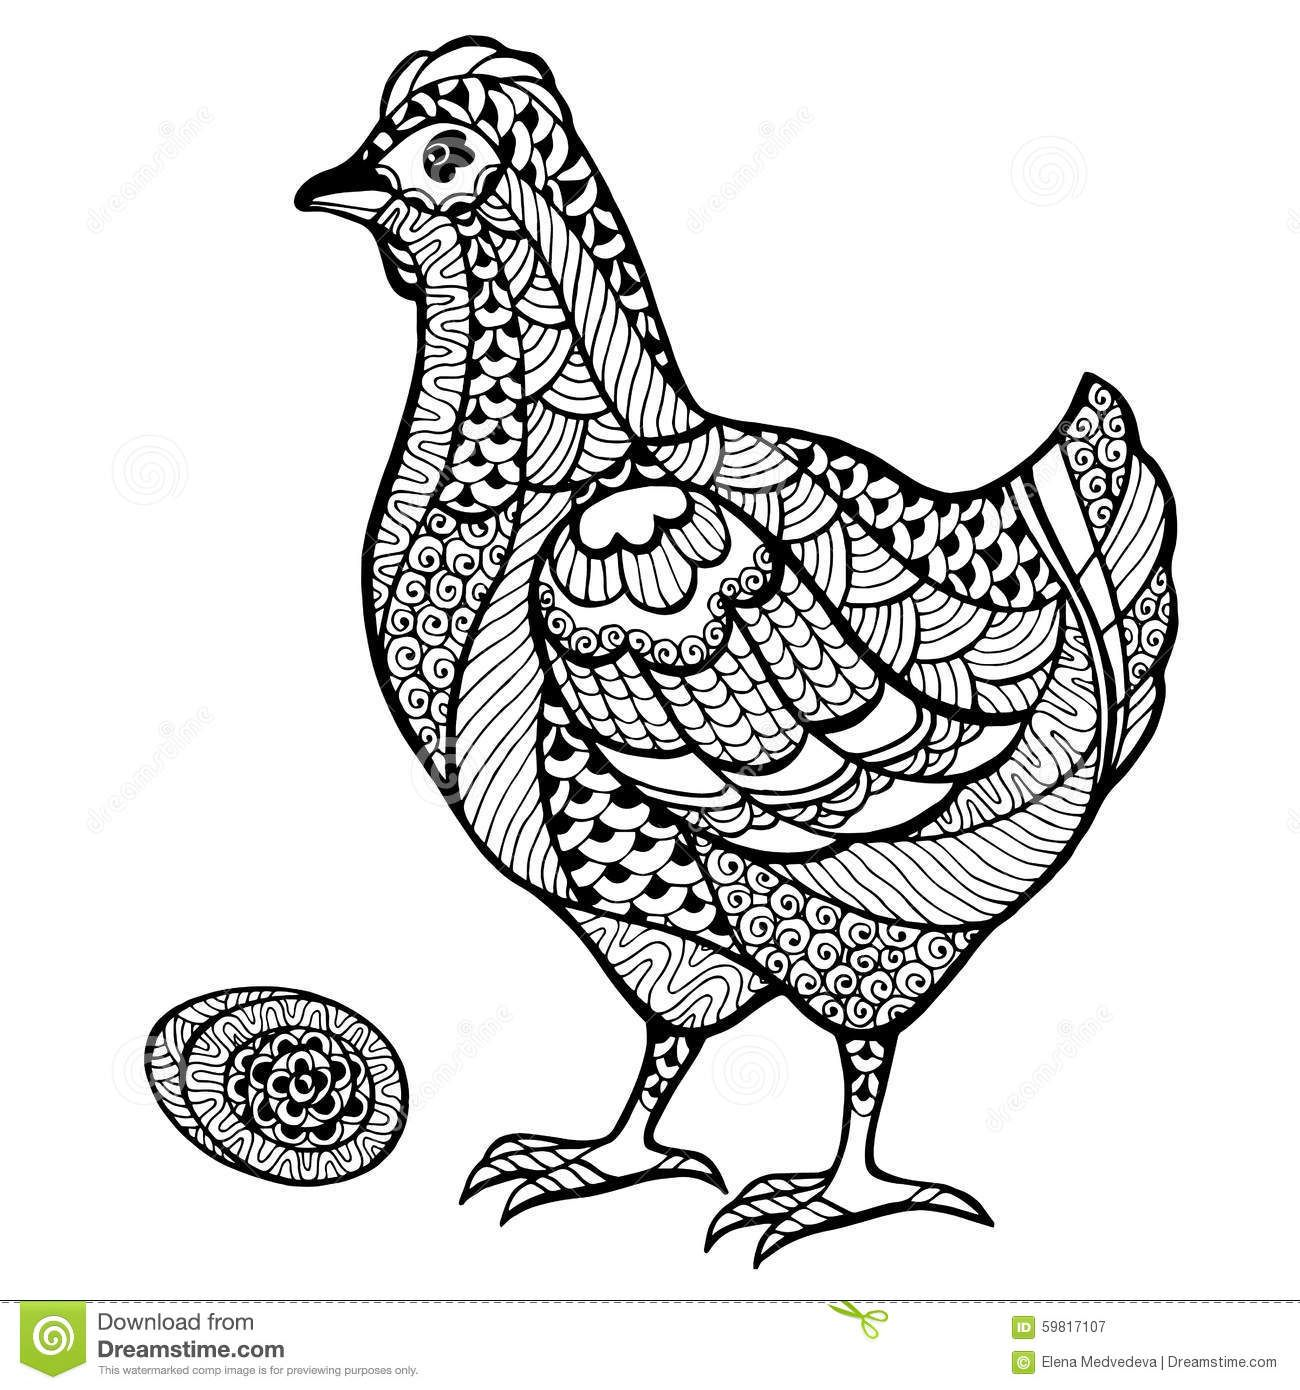 Zentangle Stylized Chicken With Egg Zentangle Chicken Coloring Animal Coloring Books